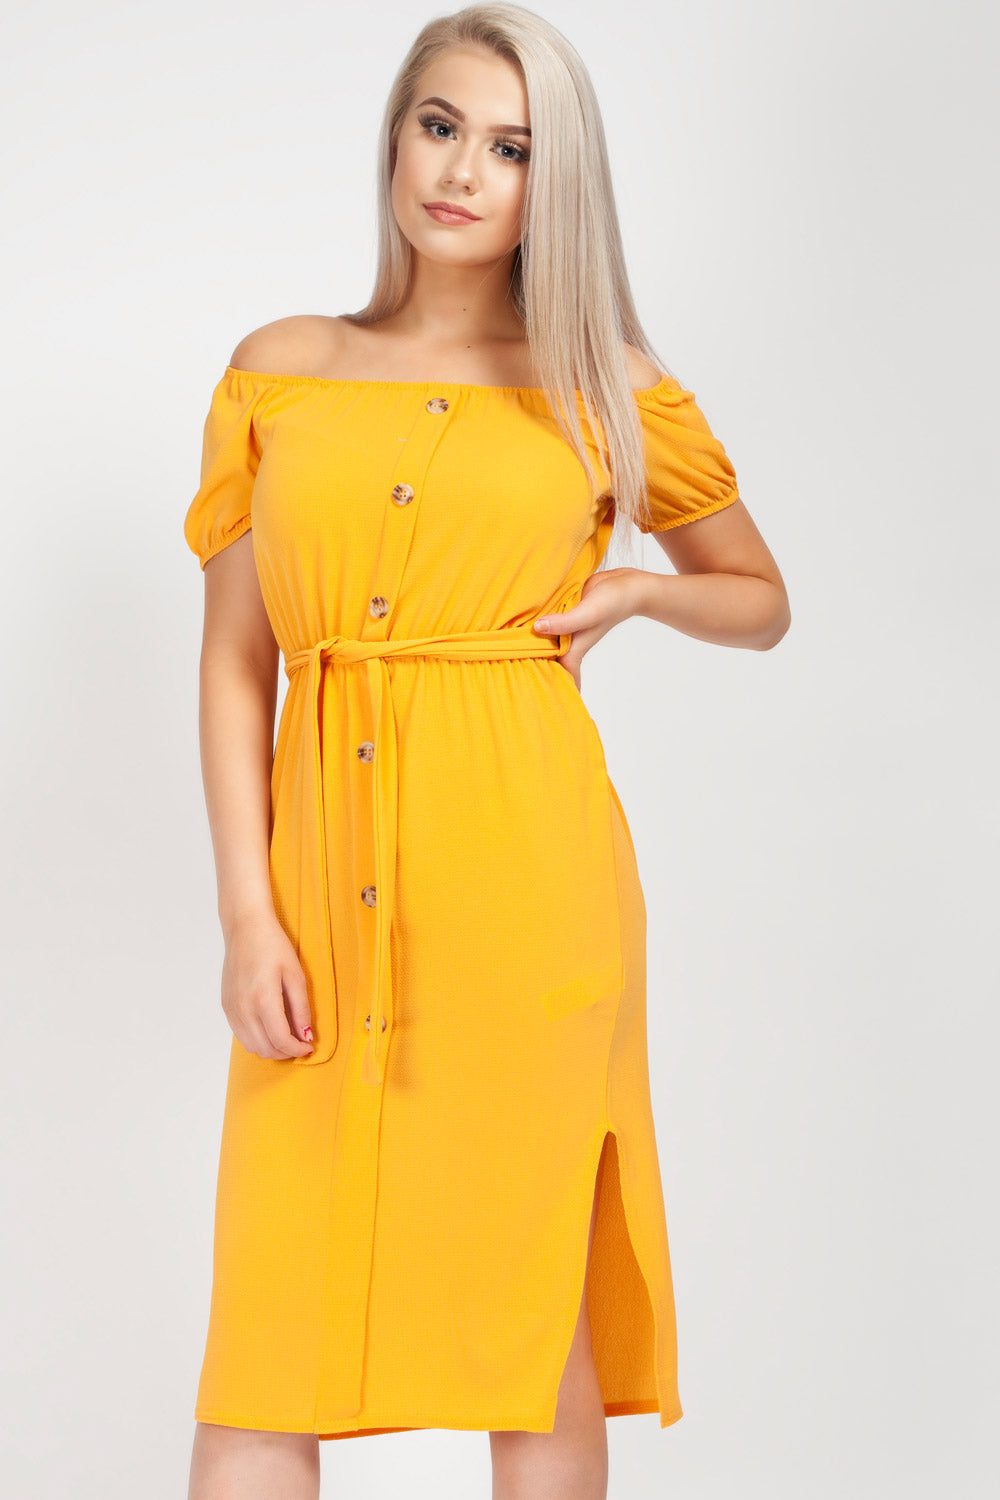 yellow button front dress uk